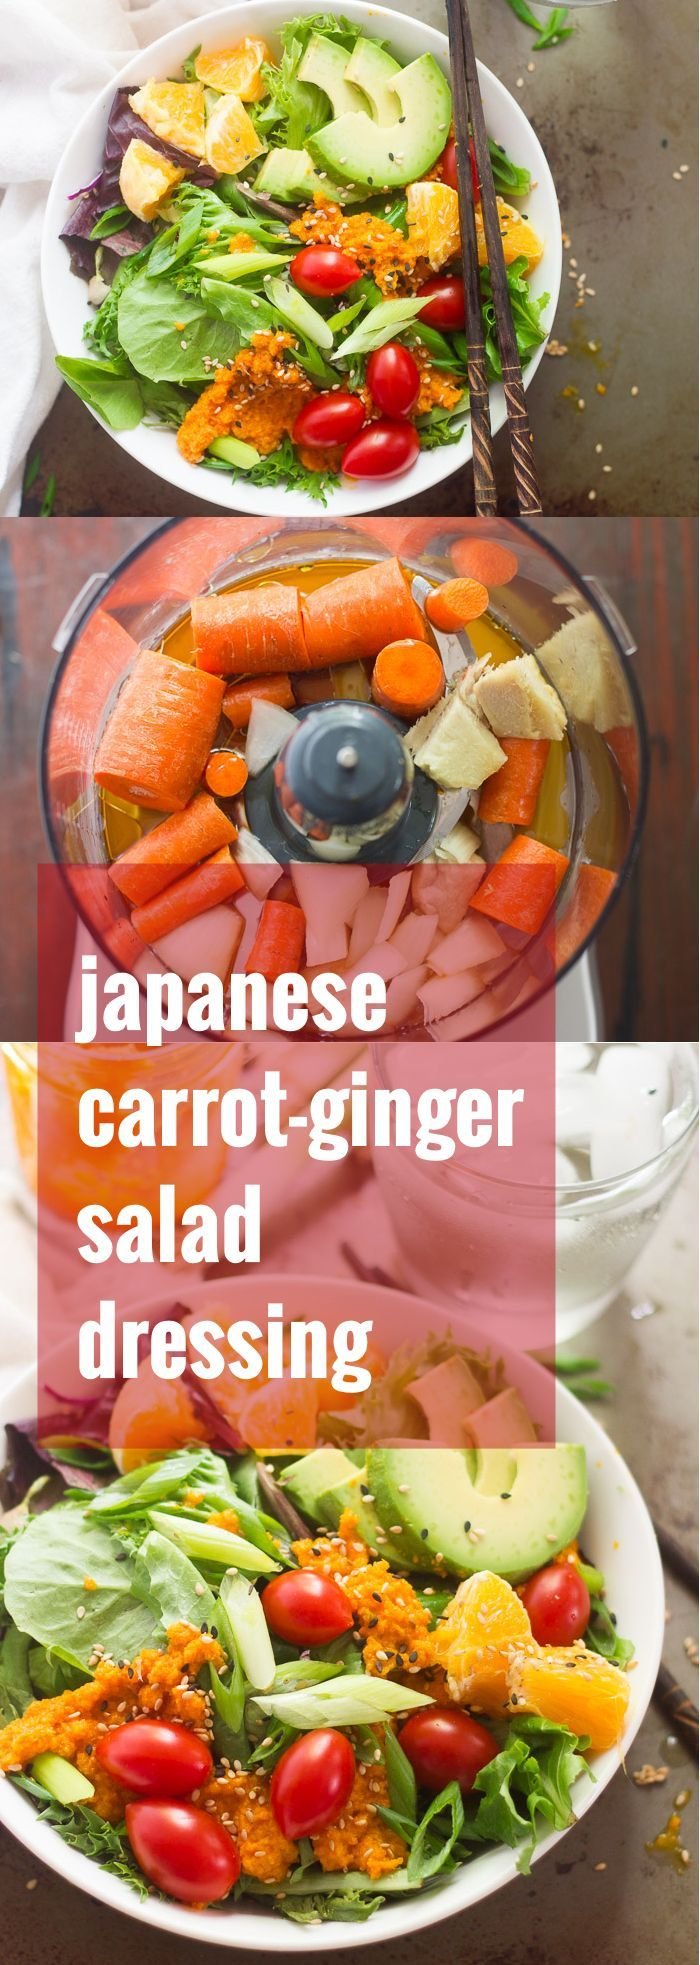 Fresh greens and juicy orange slices are tossed on a creamy carrot ginger dressing to create this healthy and refreshing Japanese-inspired salad.